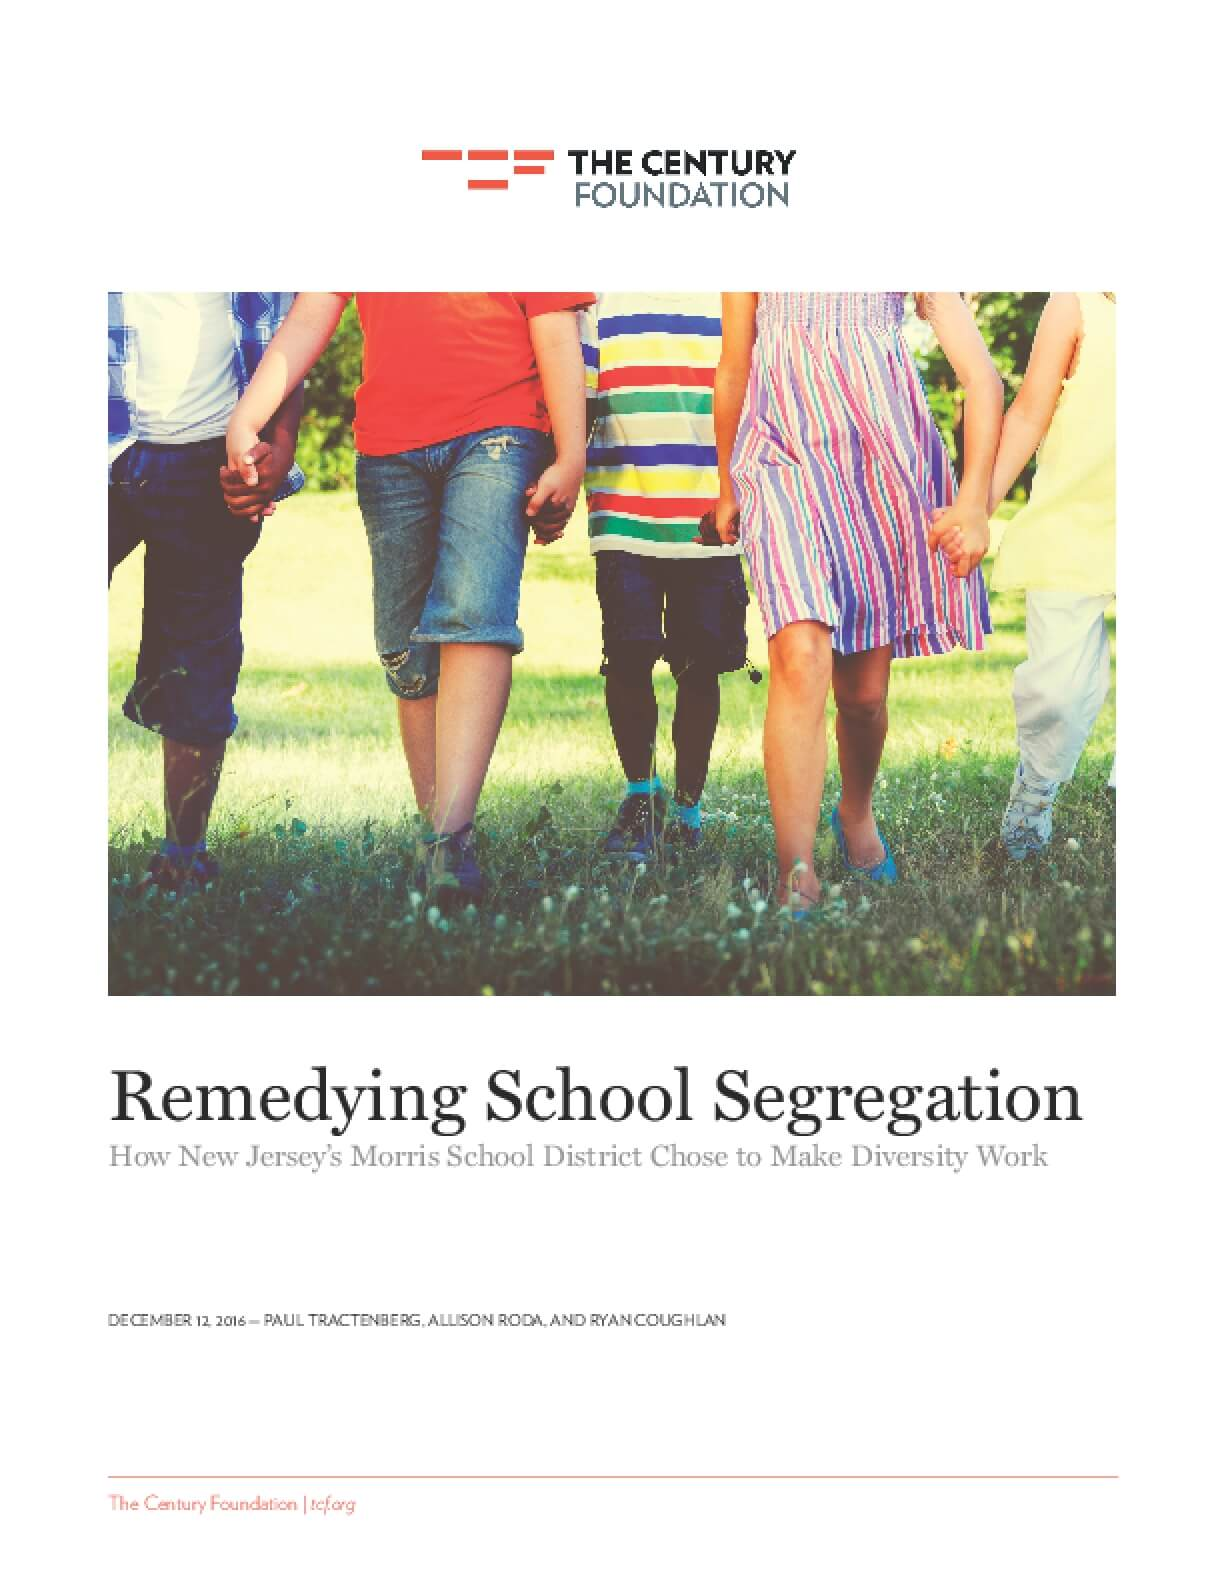 Remedying School Segregation: How New Jersey's Morris School District Chose to Make Diversity Work